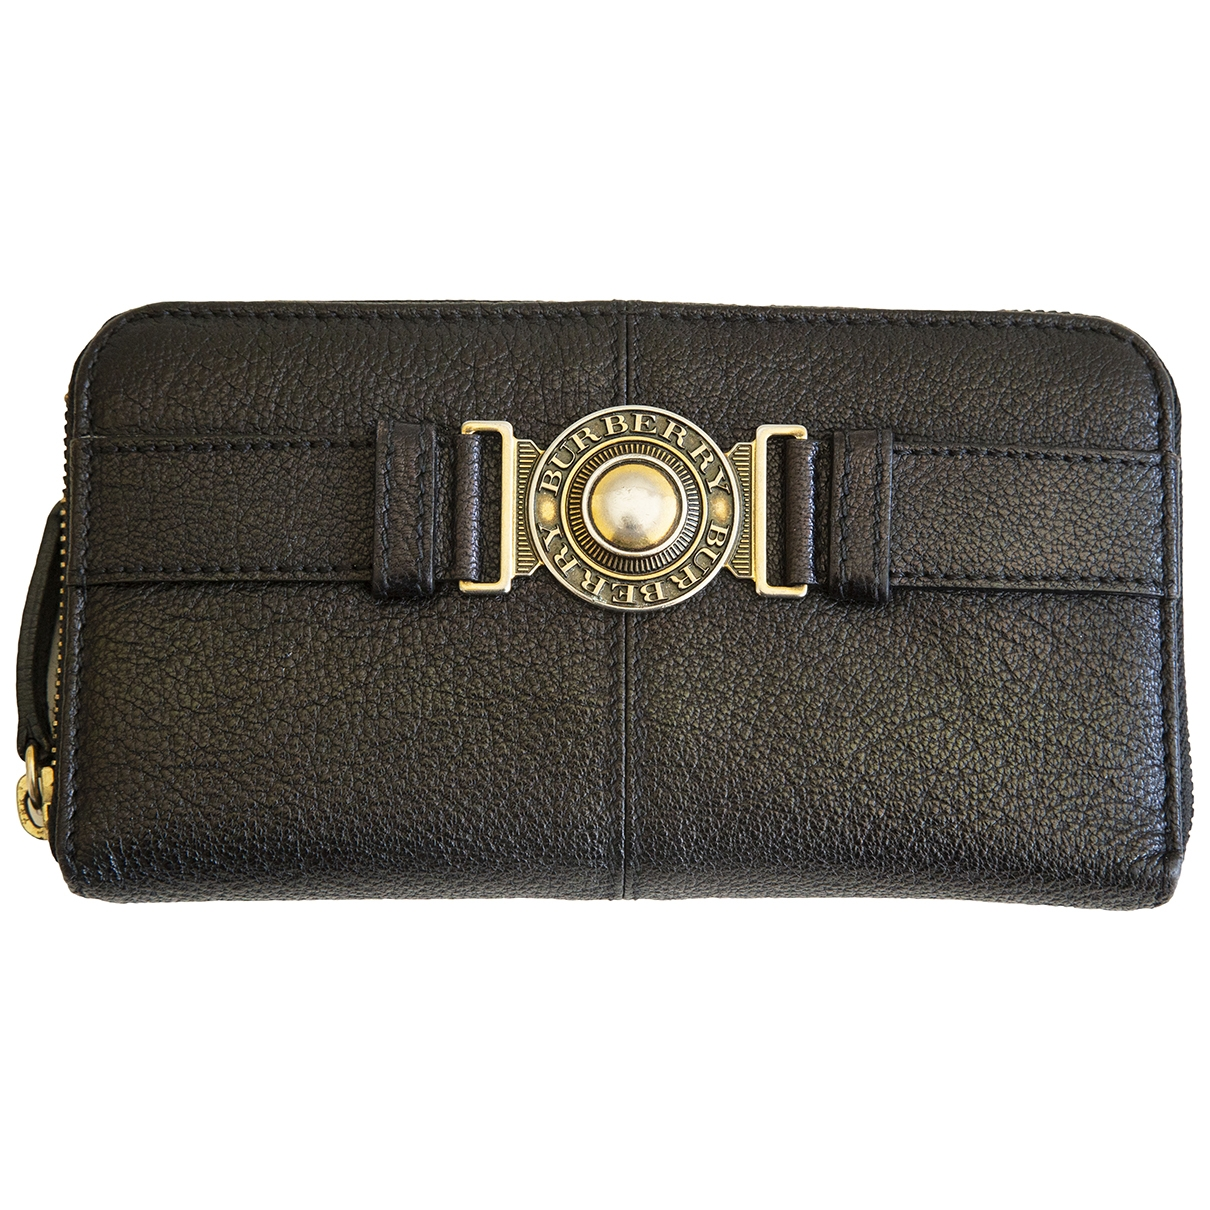 Burberry \N Brown Leather wallet for Women \N